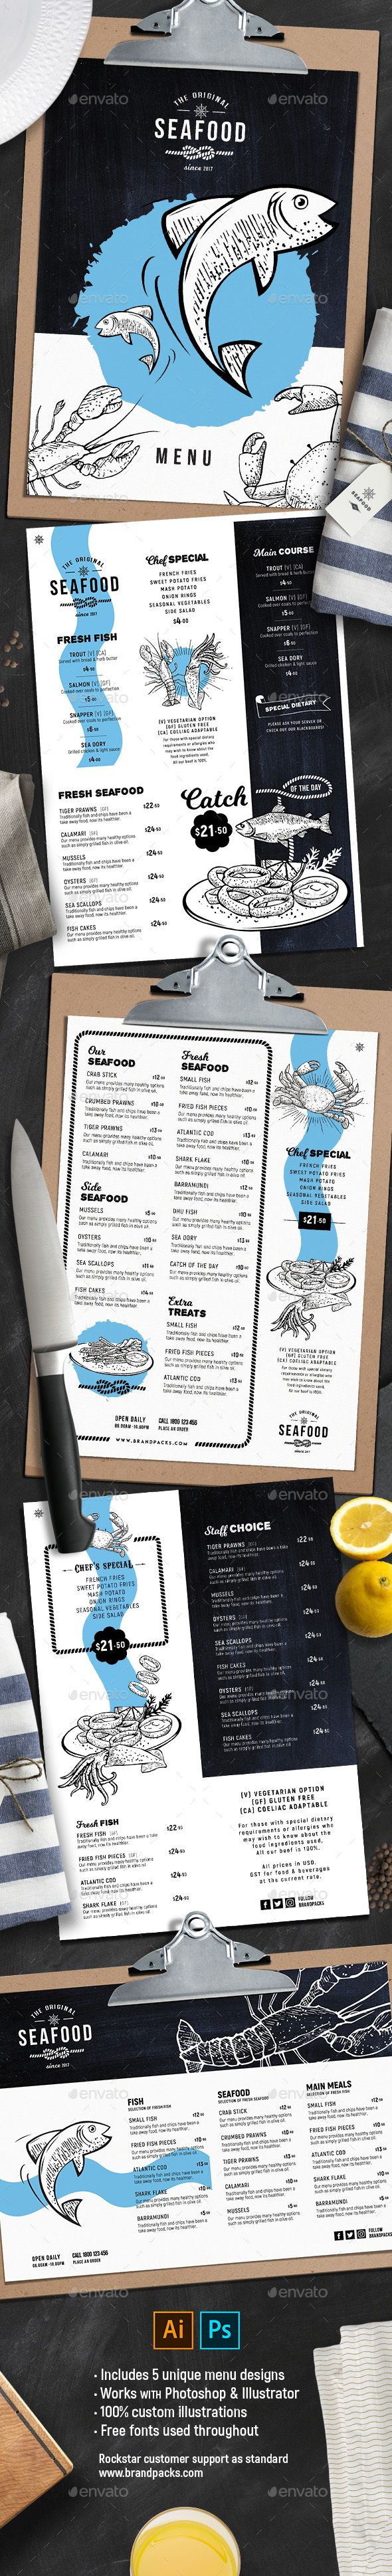 Seafood Menu Templates — Photoshop PSD #food menu #lobster • Available here ➝ https://graphicriver.net/item/seafood-menu-templates/21003939?ref=pxcr